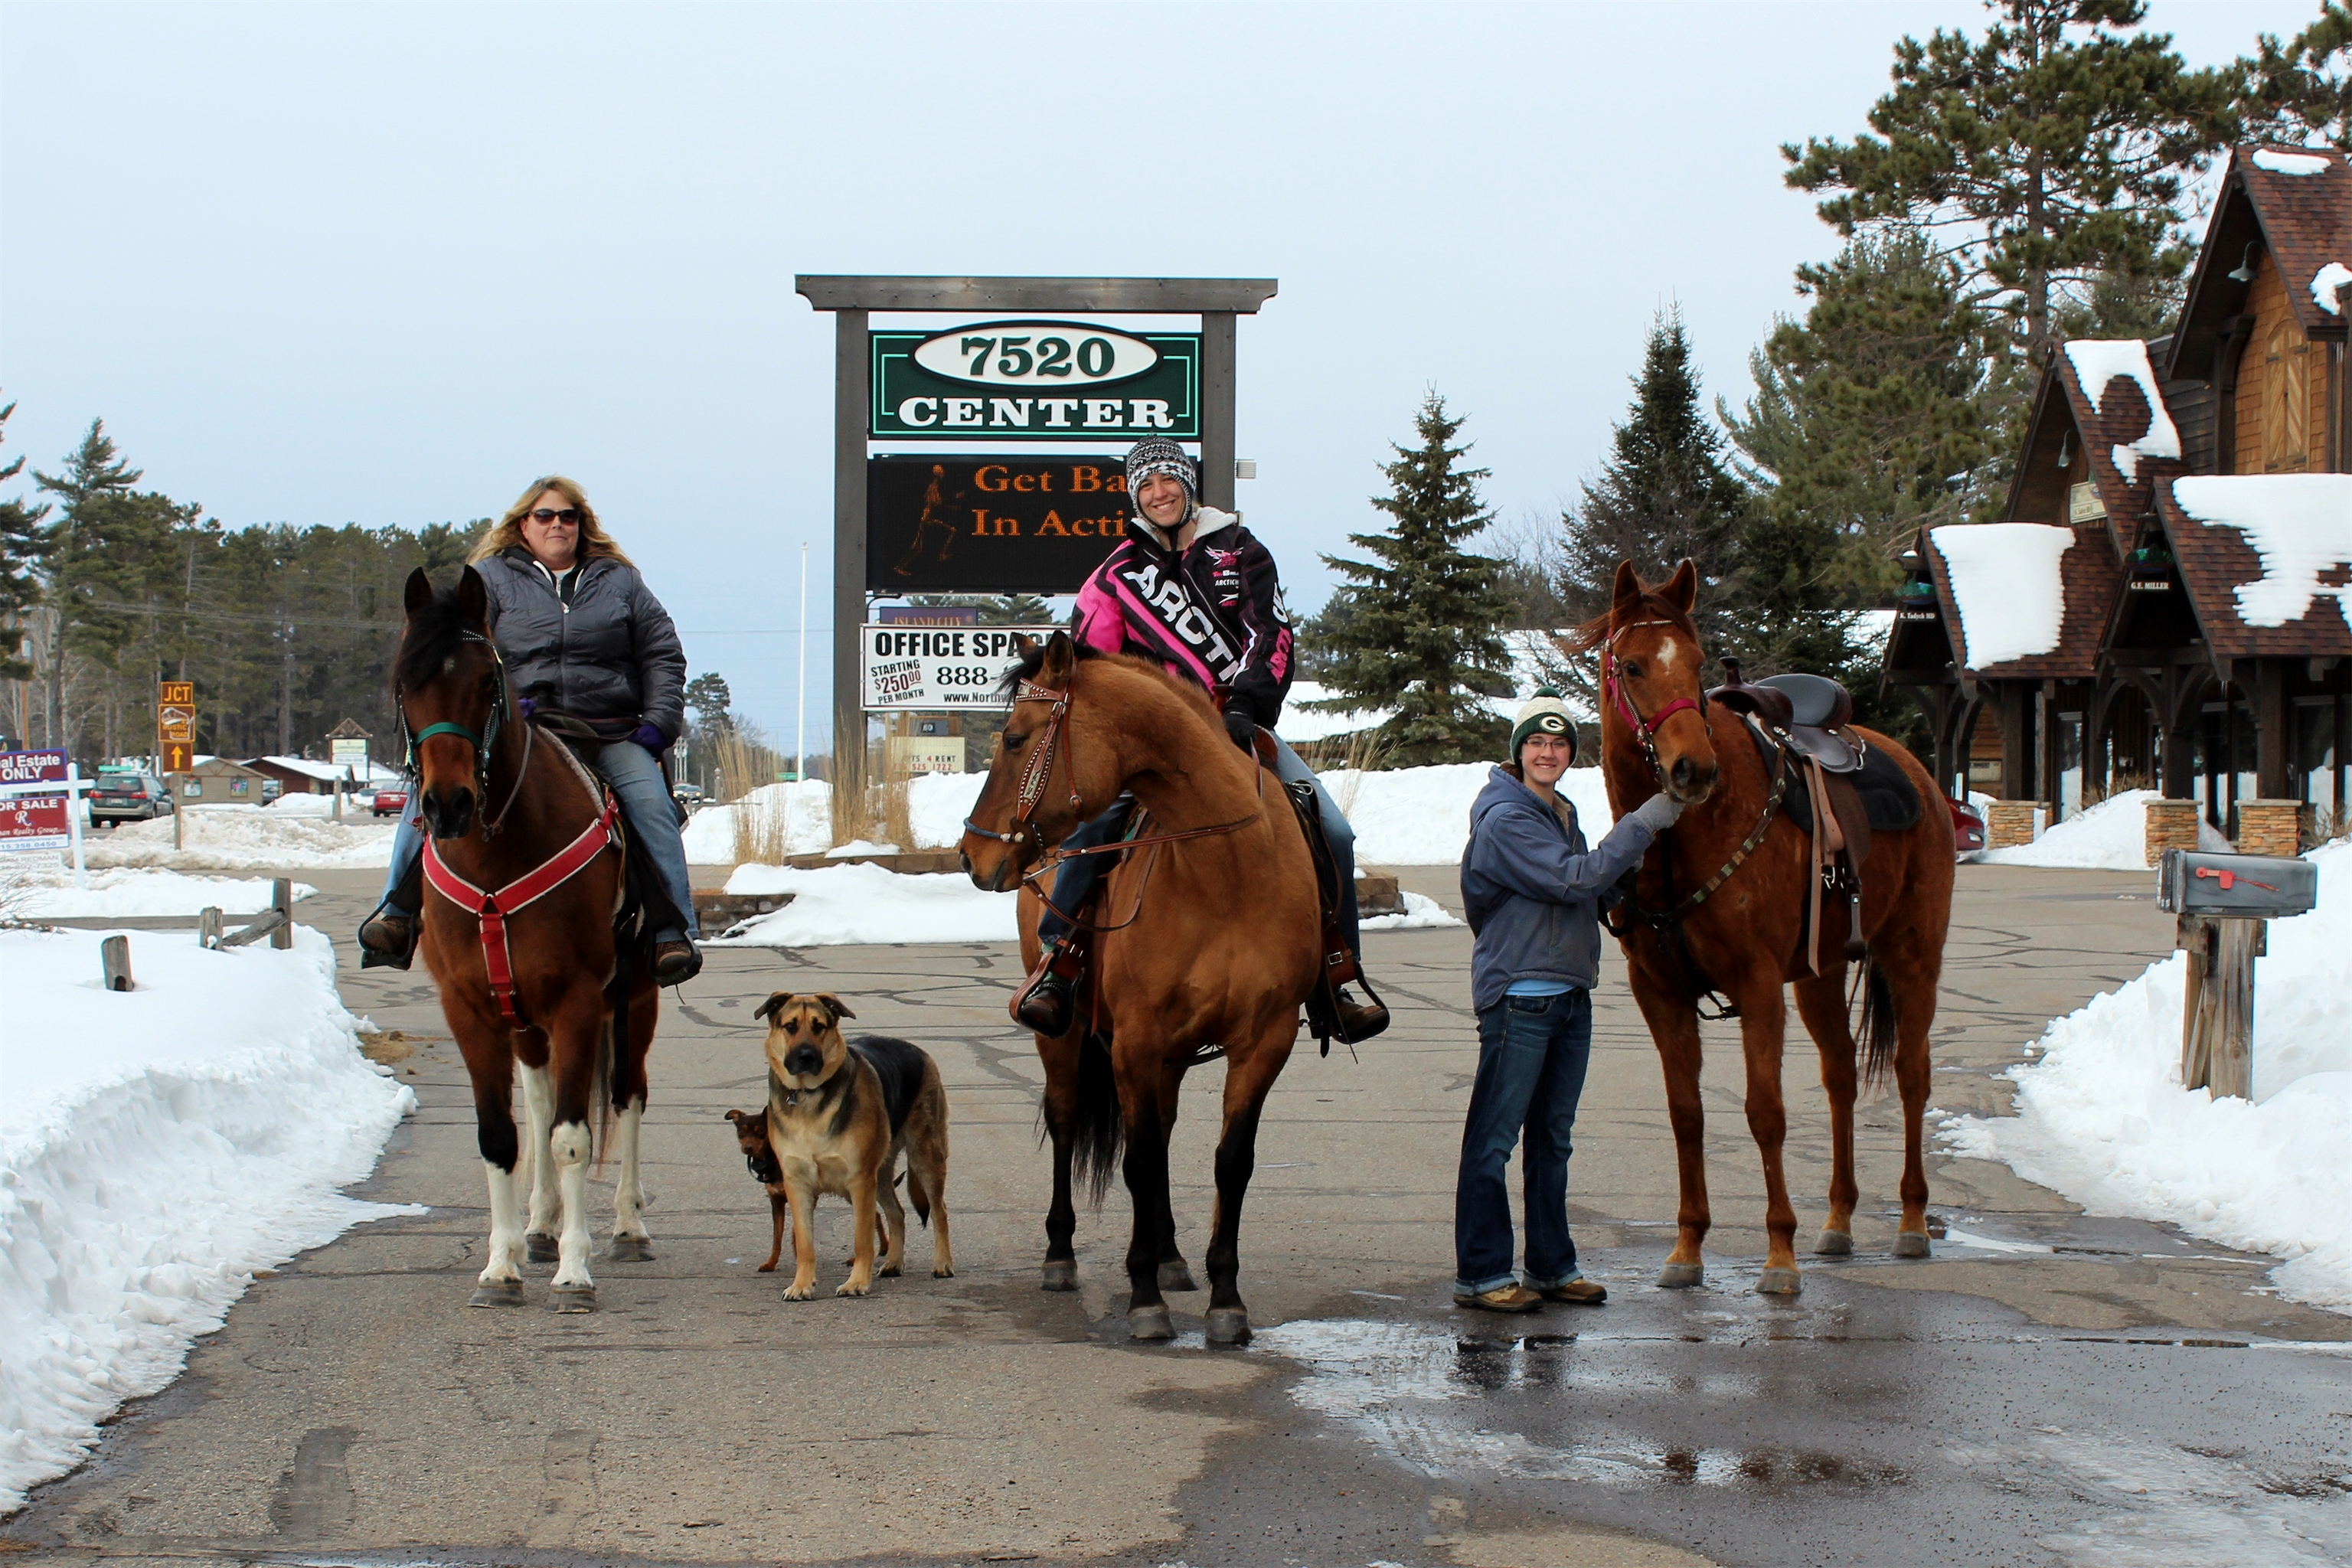 Riding horses in Minocqua. Kim Johnson photo